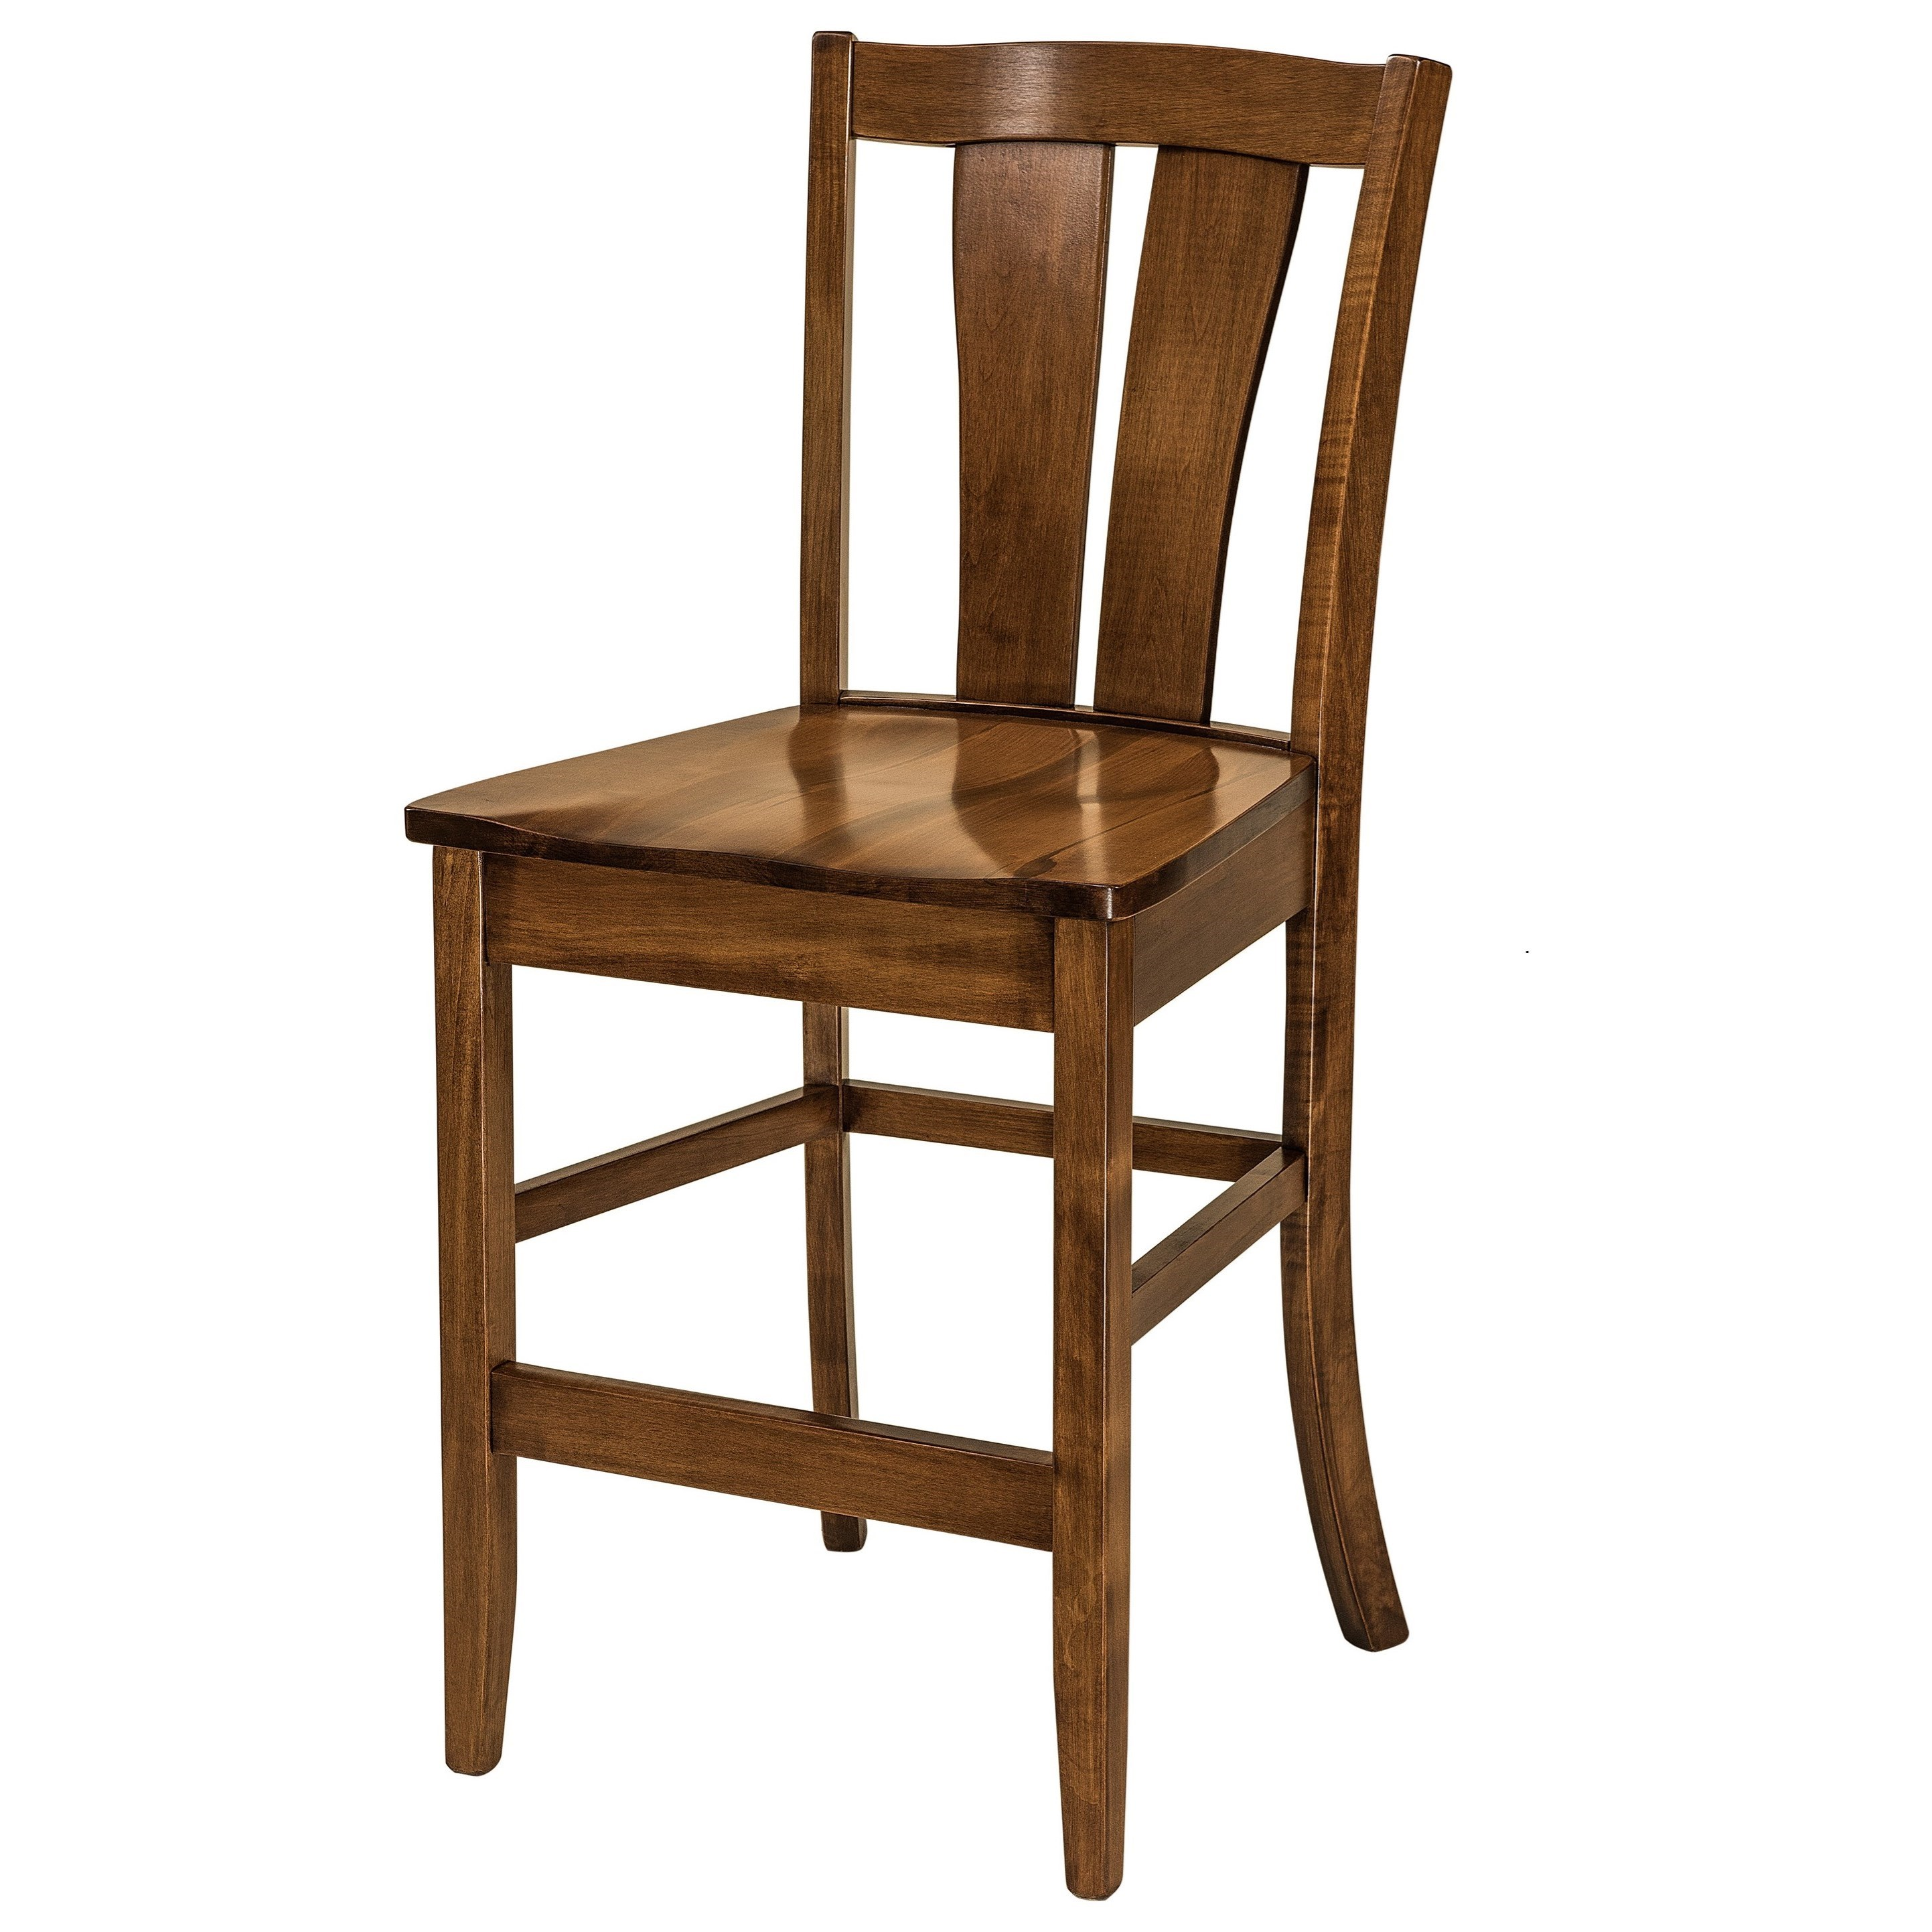 Brawley Stationary Bar Stool - Leather Seat by F&N Woodworking at Mueller Furniture